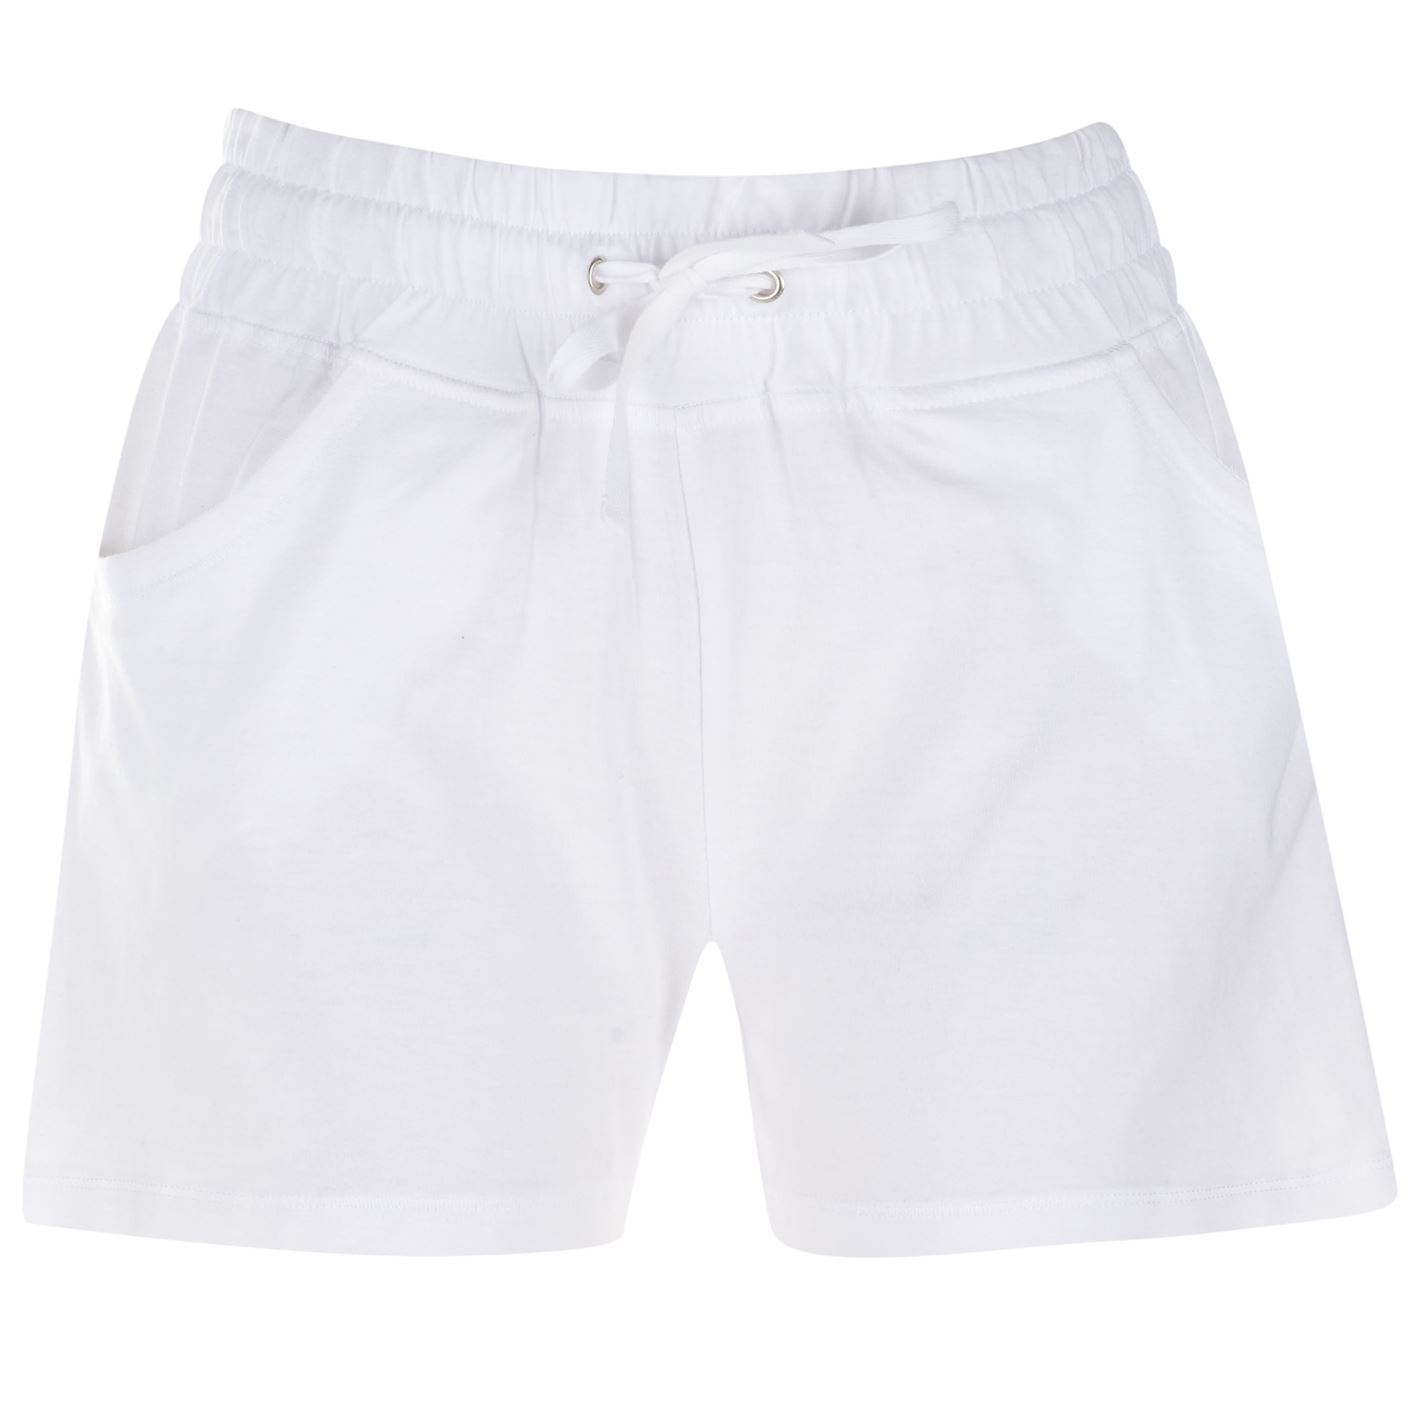 Lee Cooper Womens C Hot Pant Ladies Hotpants Shorts Pants Elastic ...